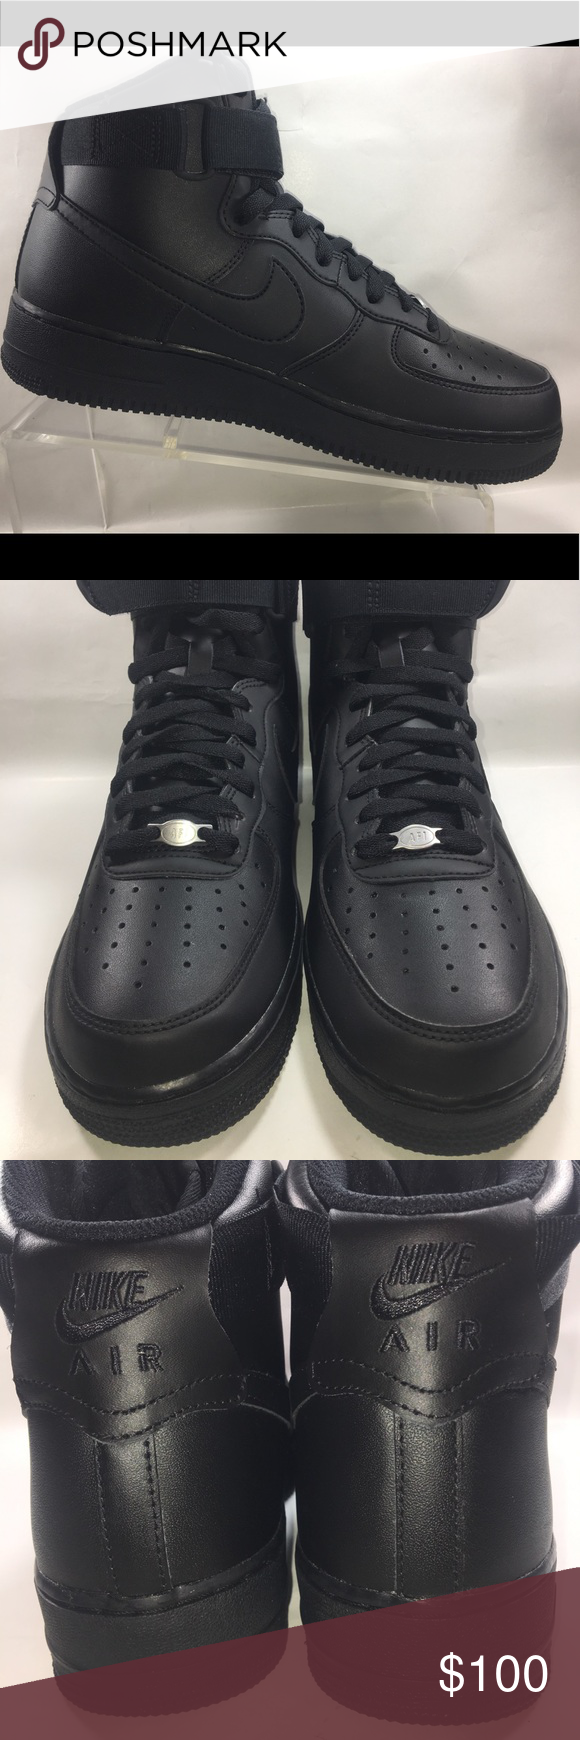 Nike Air Force One All Black High Top Lace Up Shoe Excellent Like New  Condition Some Normal Wear See Pictures. Nike Air Force Ones High Top  07 All  Black ... 017c44491